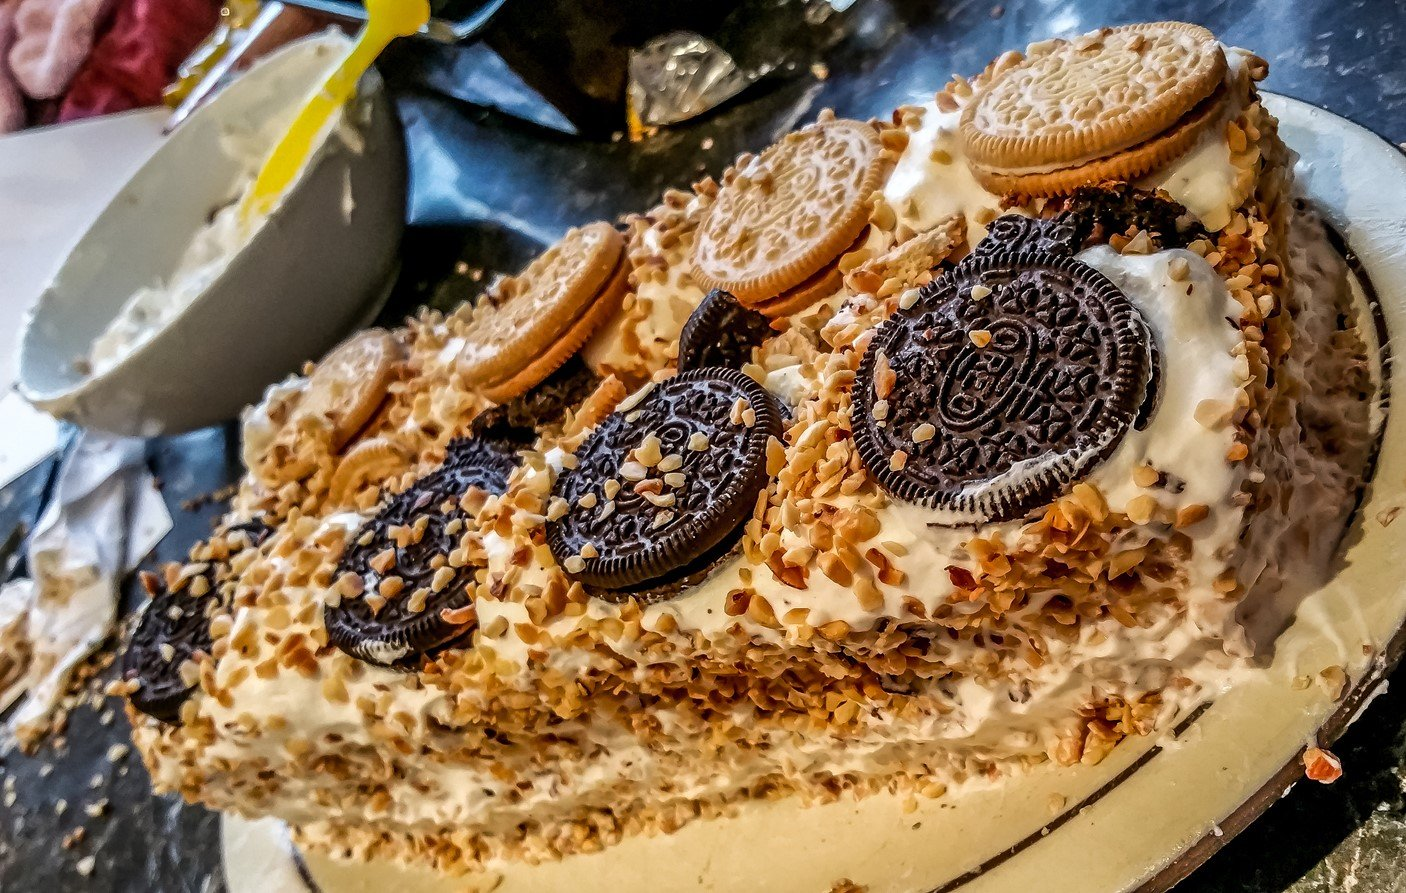 Decorate vienetta with whipped cream - Golden & Peanut Butter Oreo Vienetta - Motherhooddiaries.com